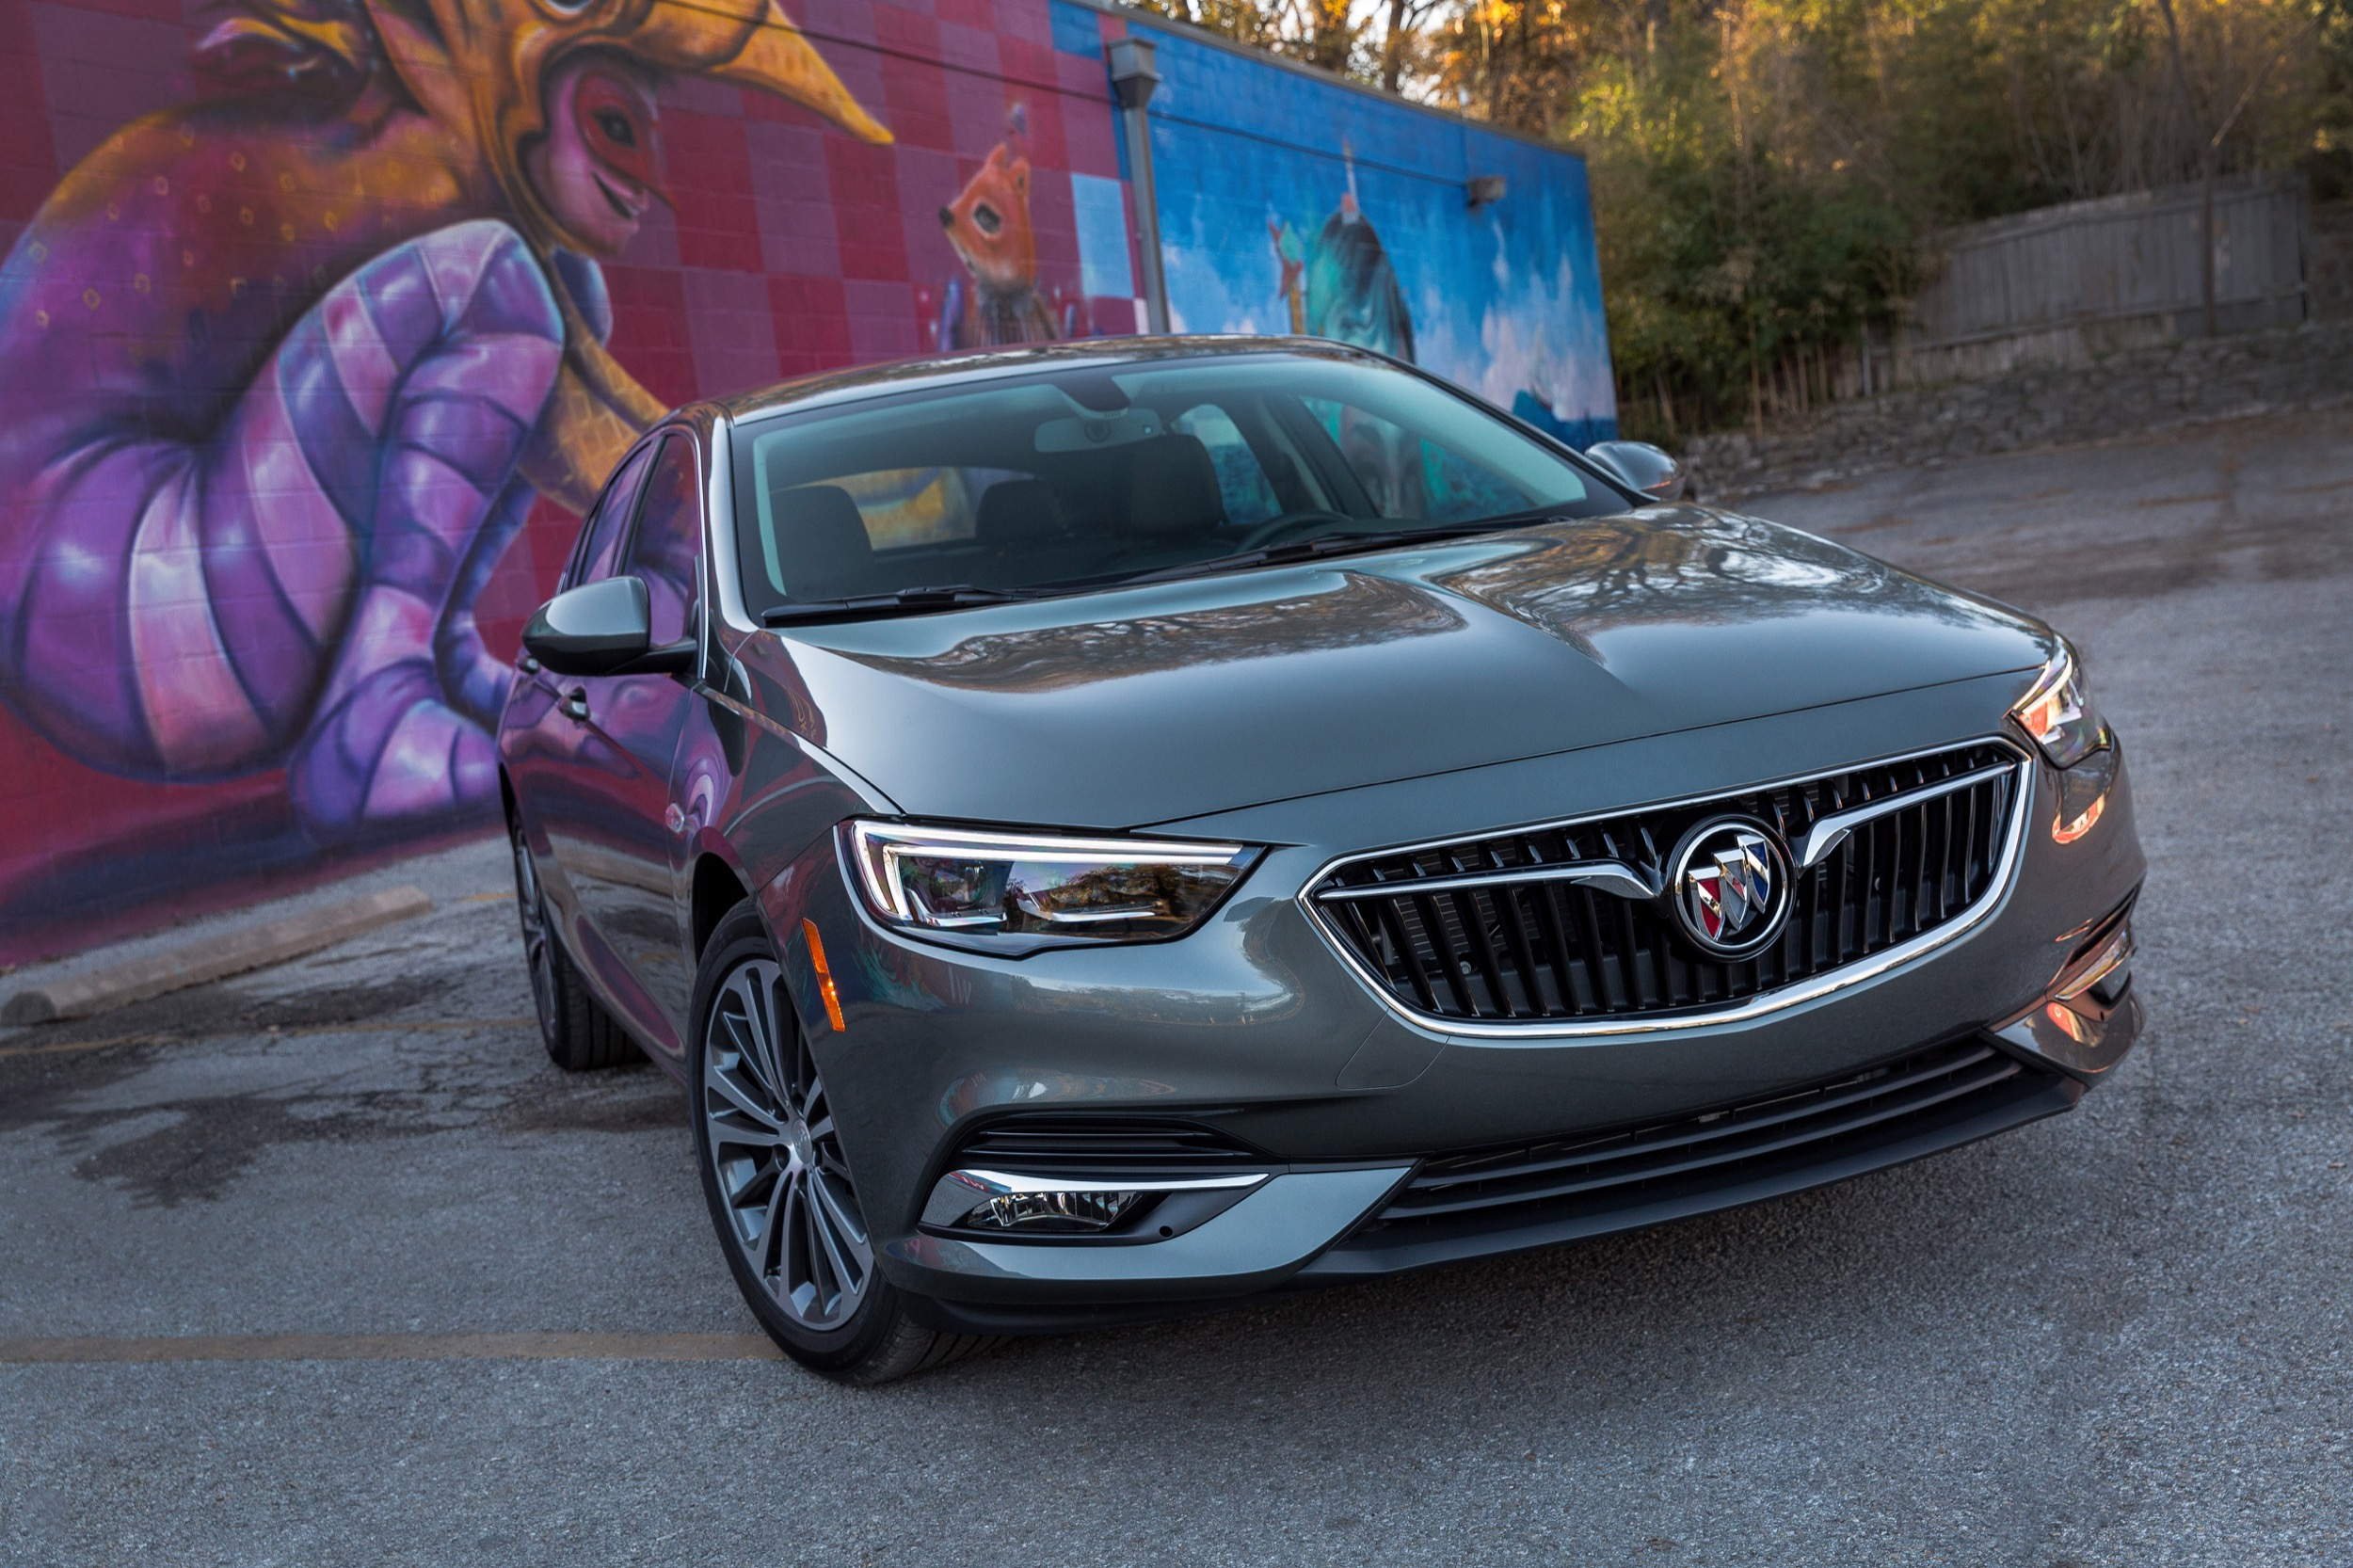 Little-Known Trick Will Disable Engine Auto-Stop-Start 2022 Buick Verano Engine, Problems, Accessories